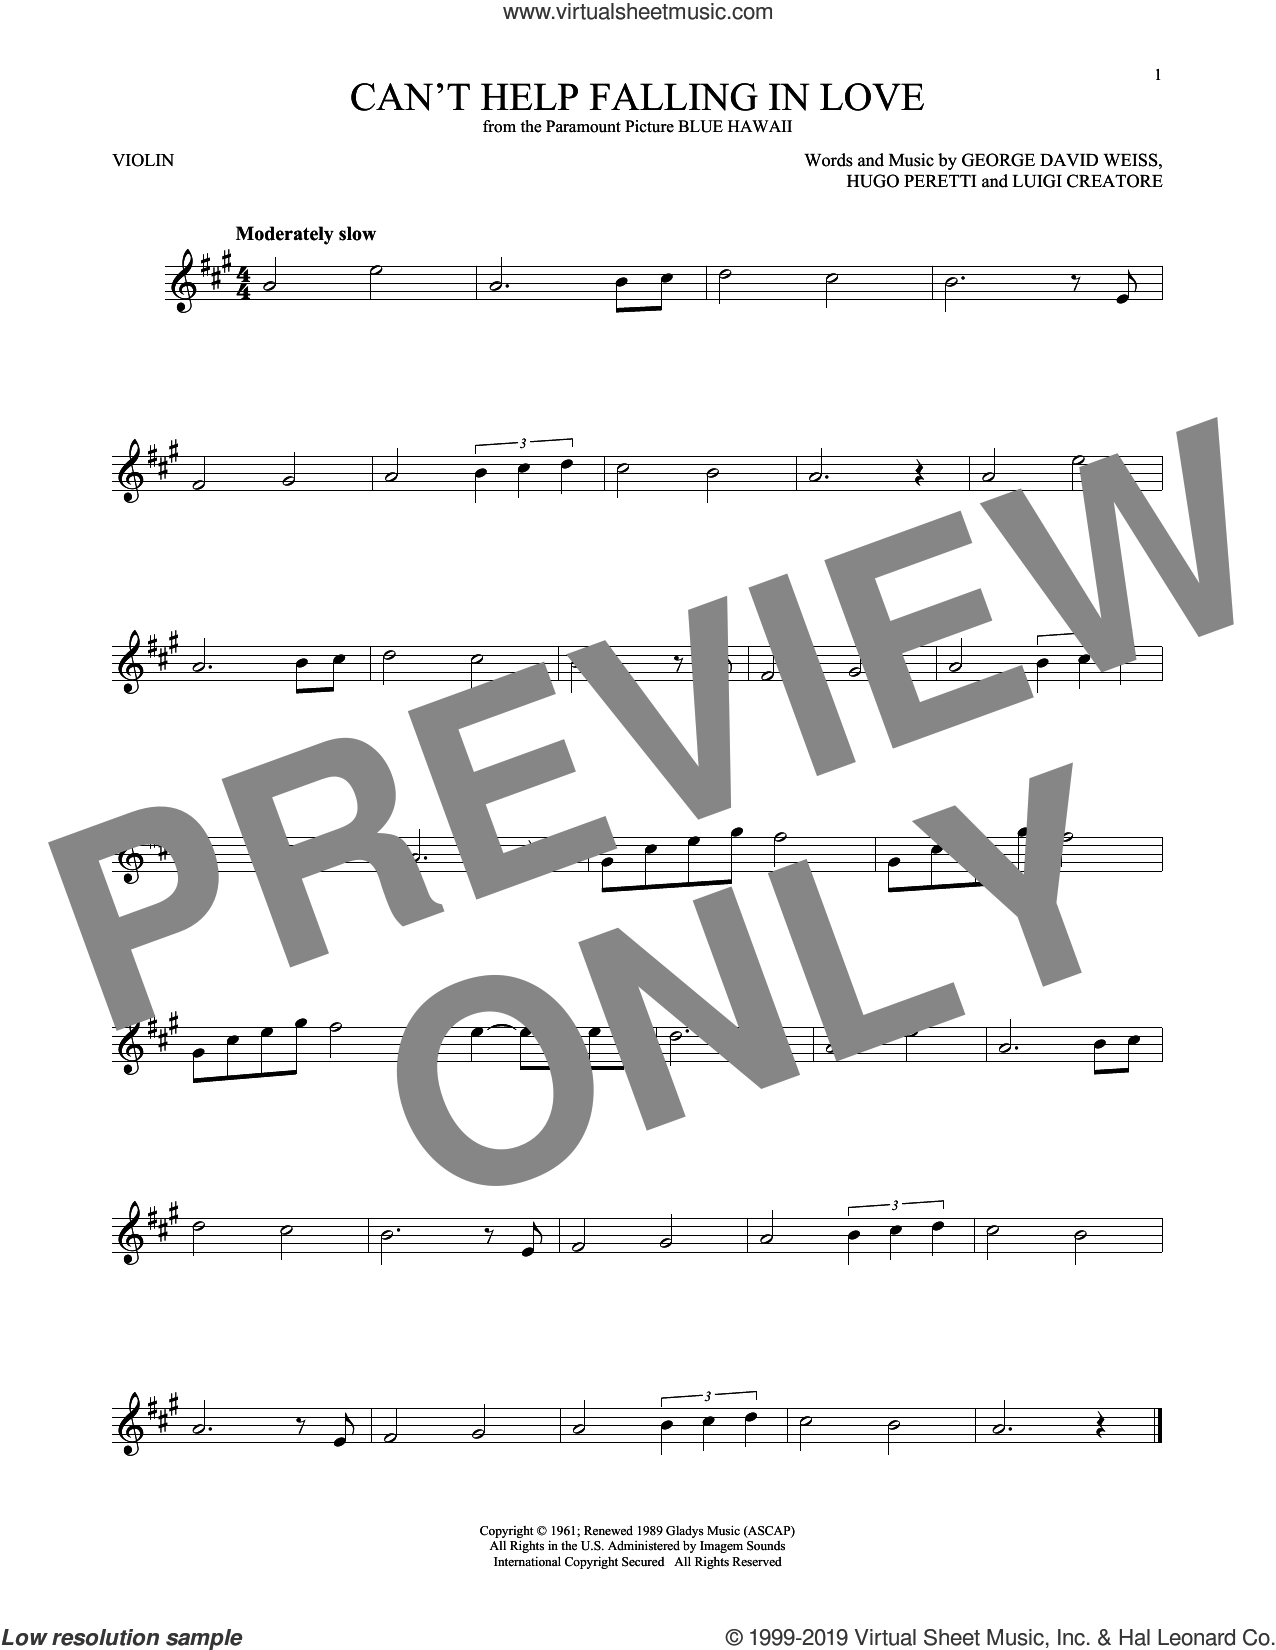 Can't Help Falling In Love sheet music for violin solo by Elvis Presley, George David Weiss, Hugo Peretti and Luigi Creatore, intermediate skill level